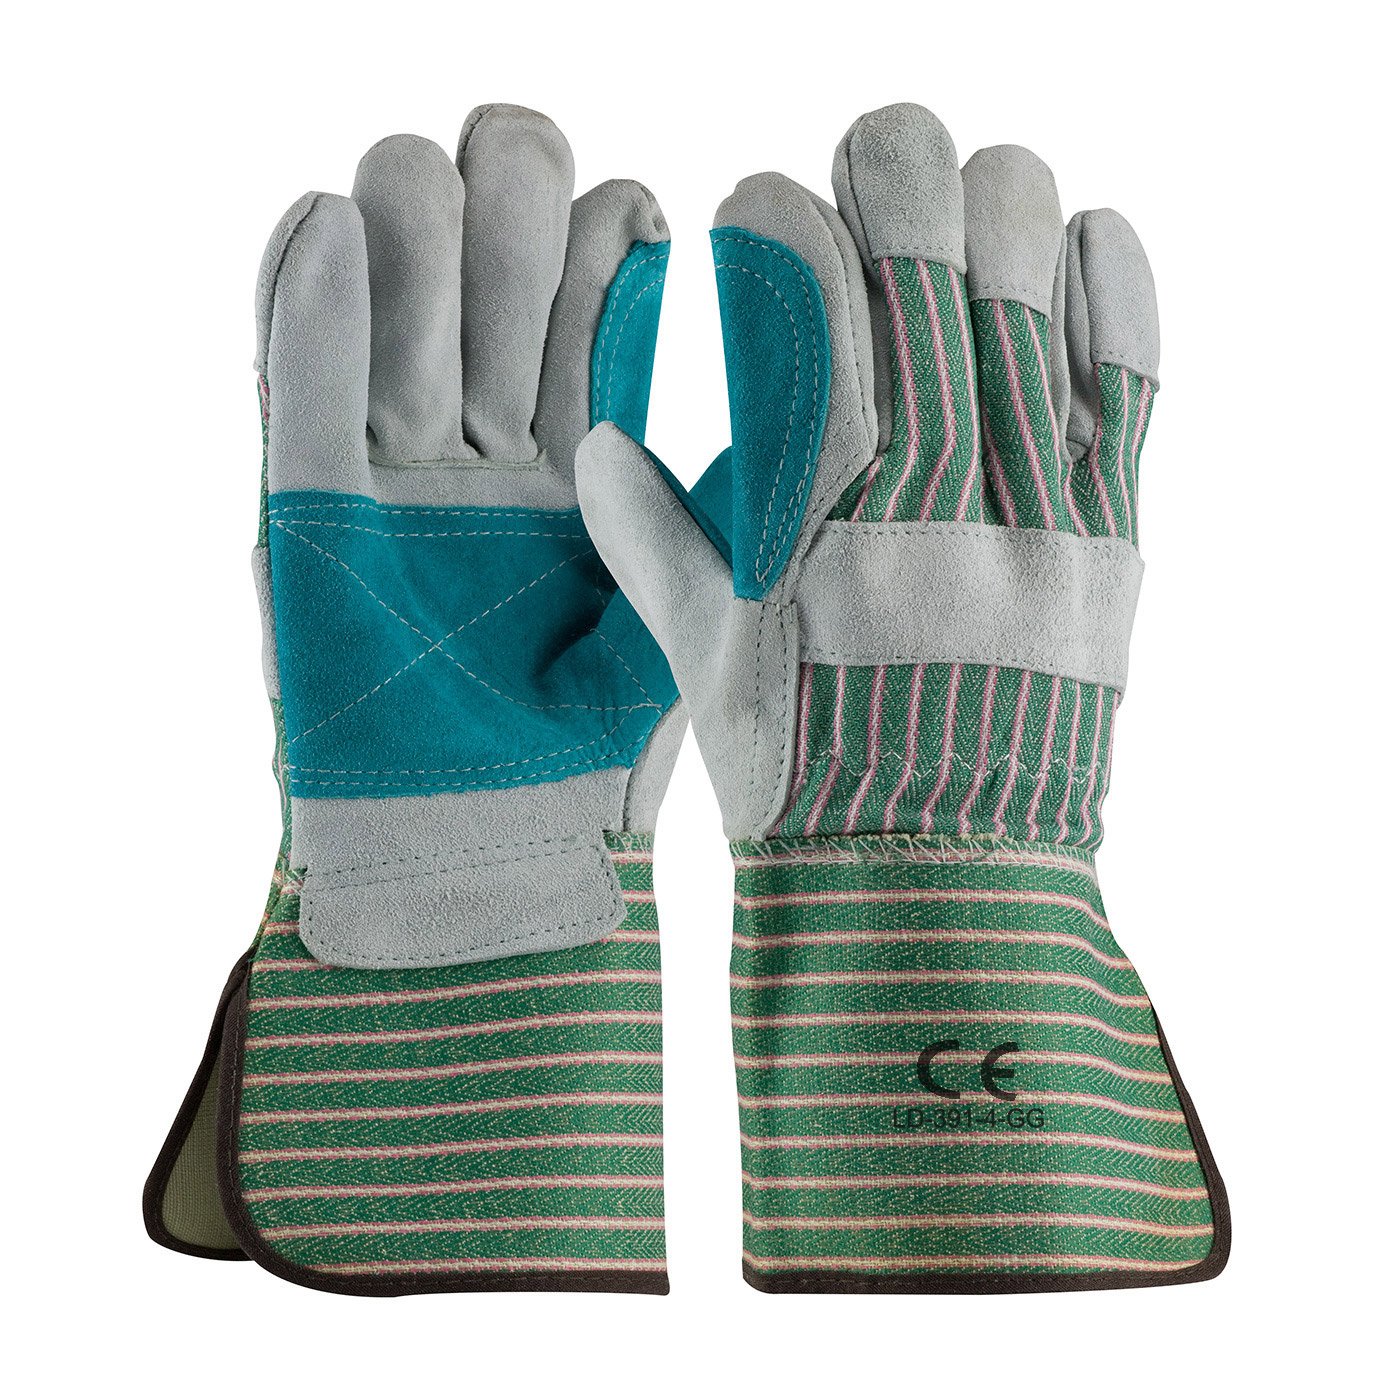 "LD-391-GG-4"" Wide Cuff Leather Double Work Gloves"